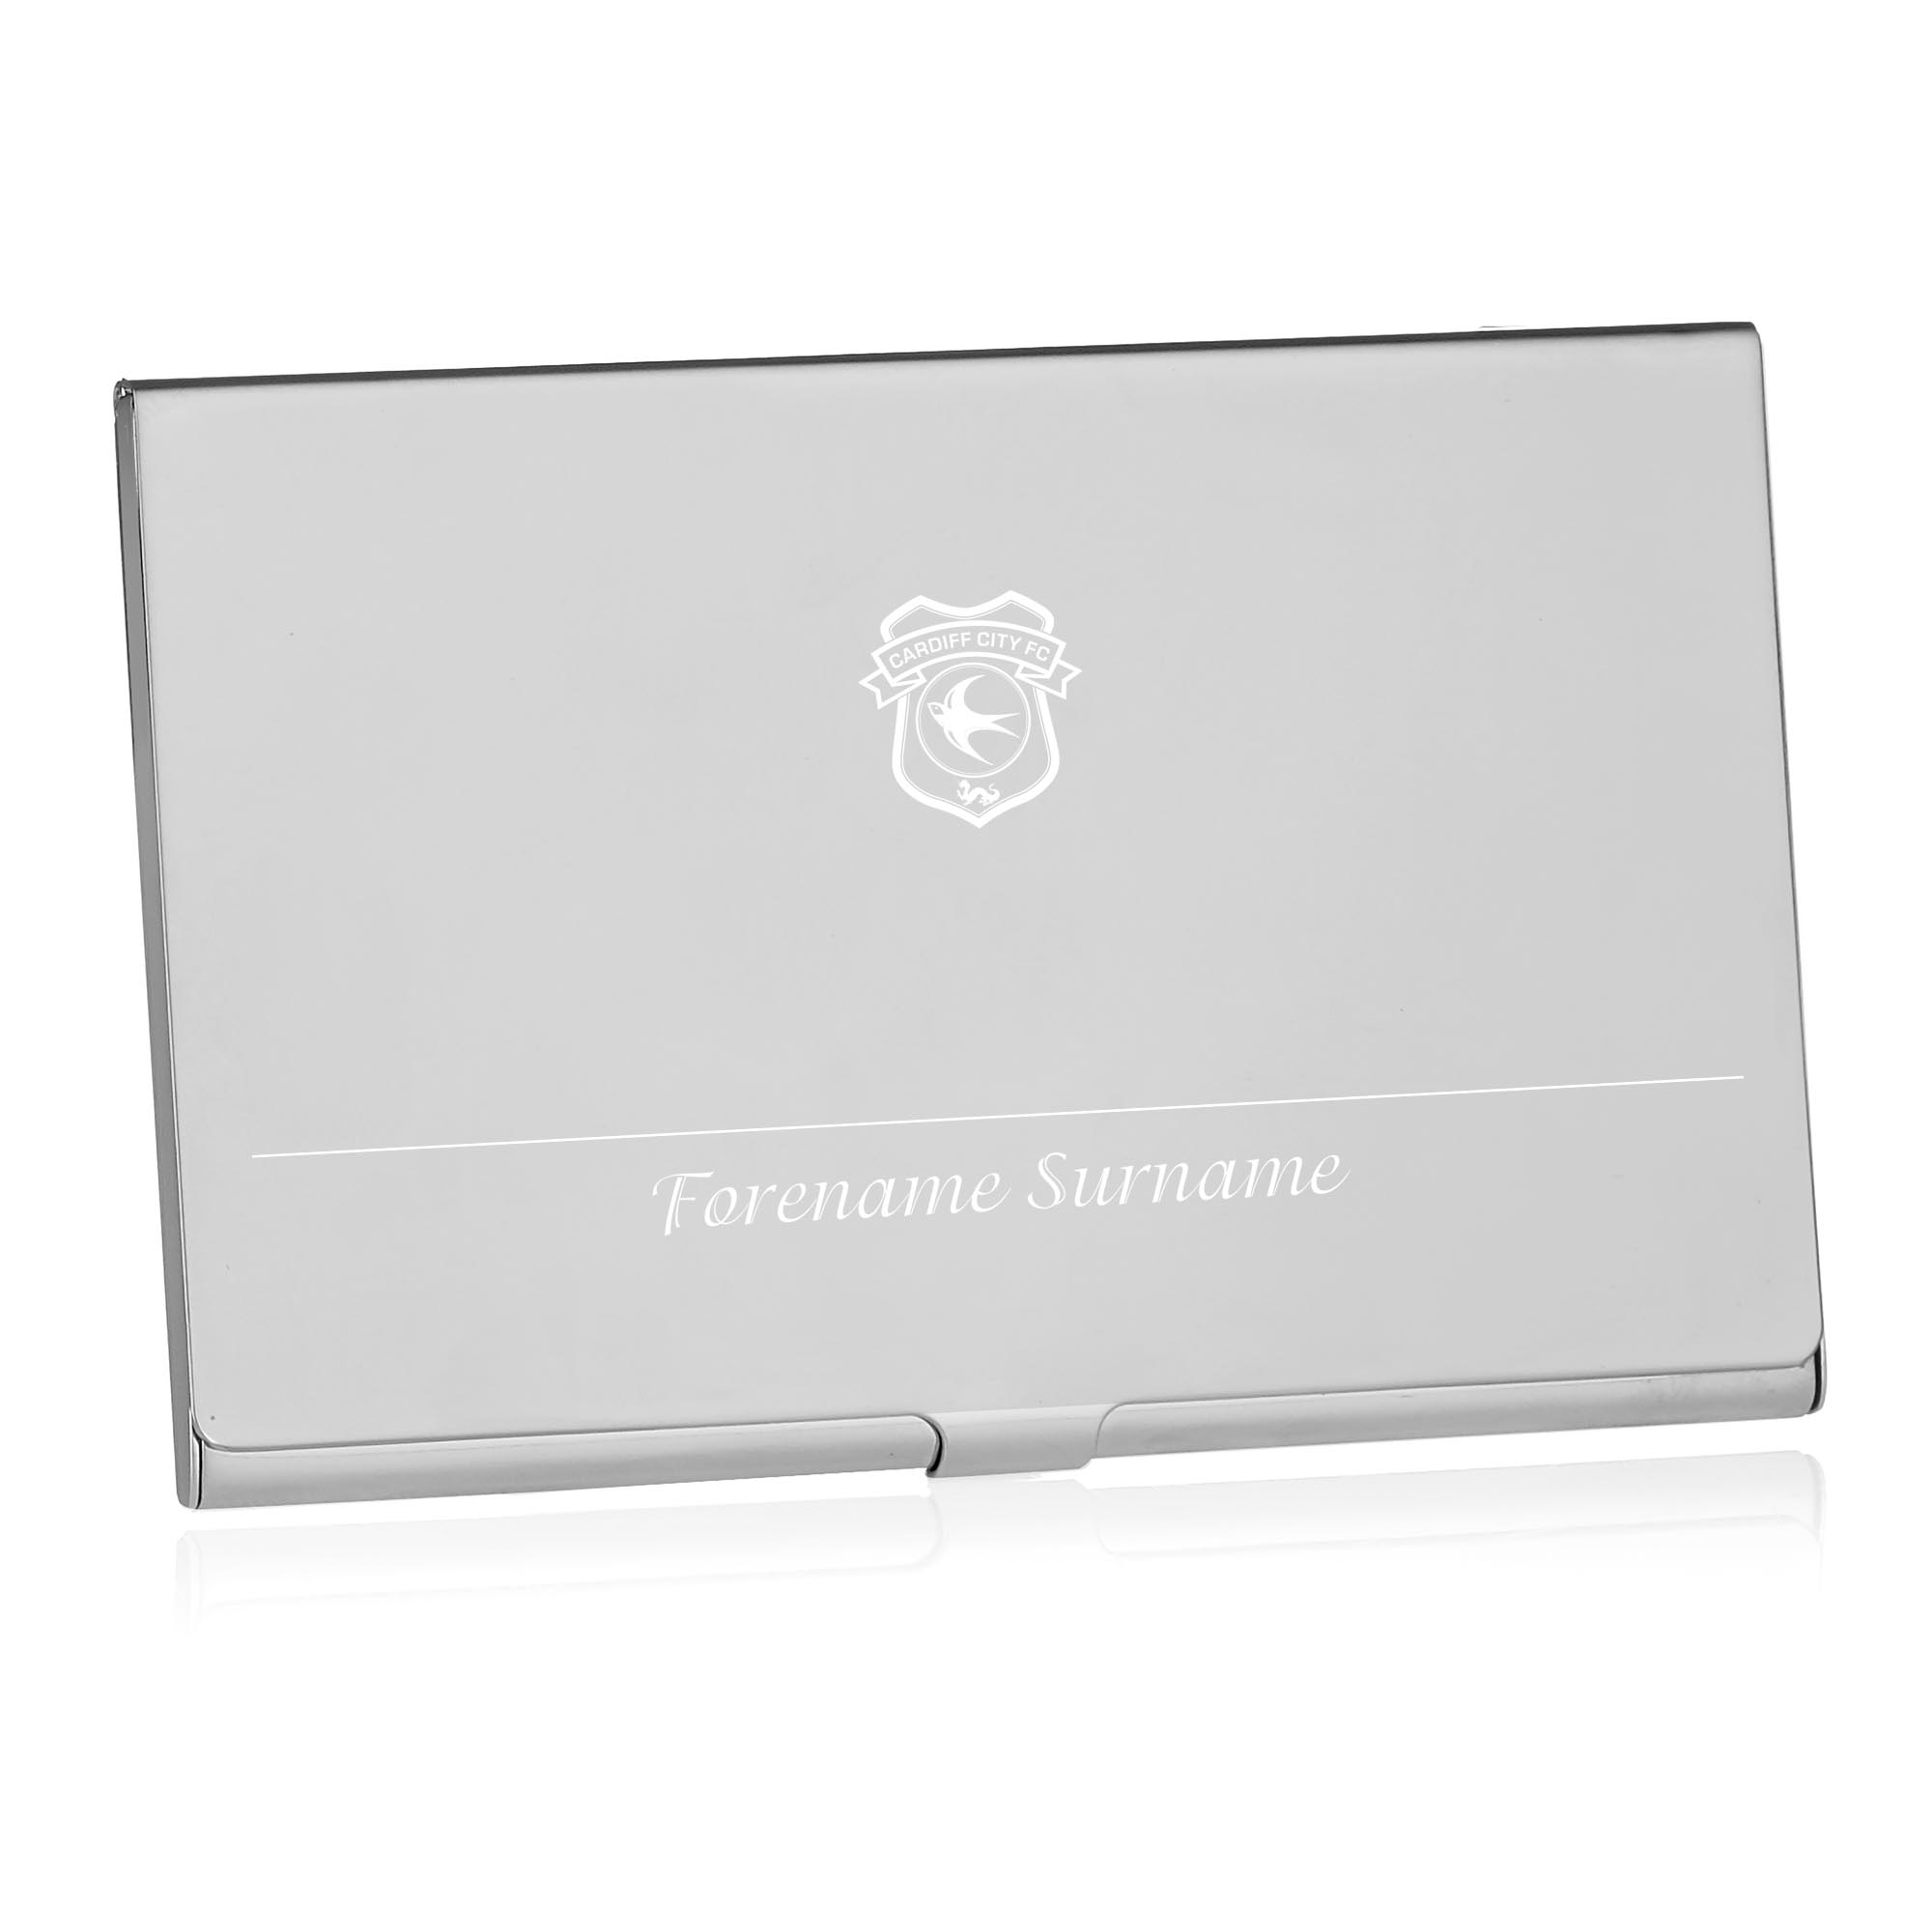 Cardiff City FC Executive Business Card Holder